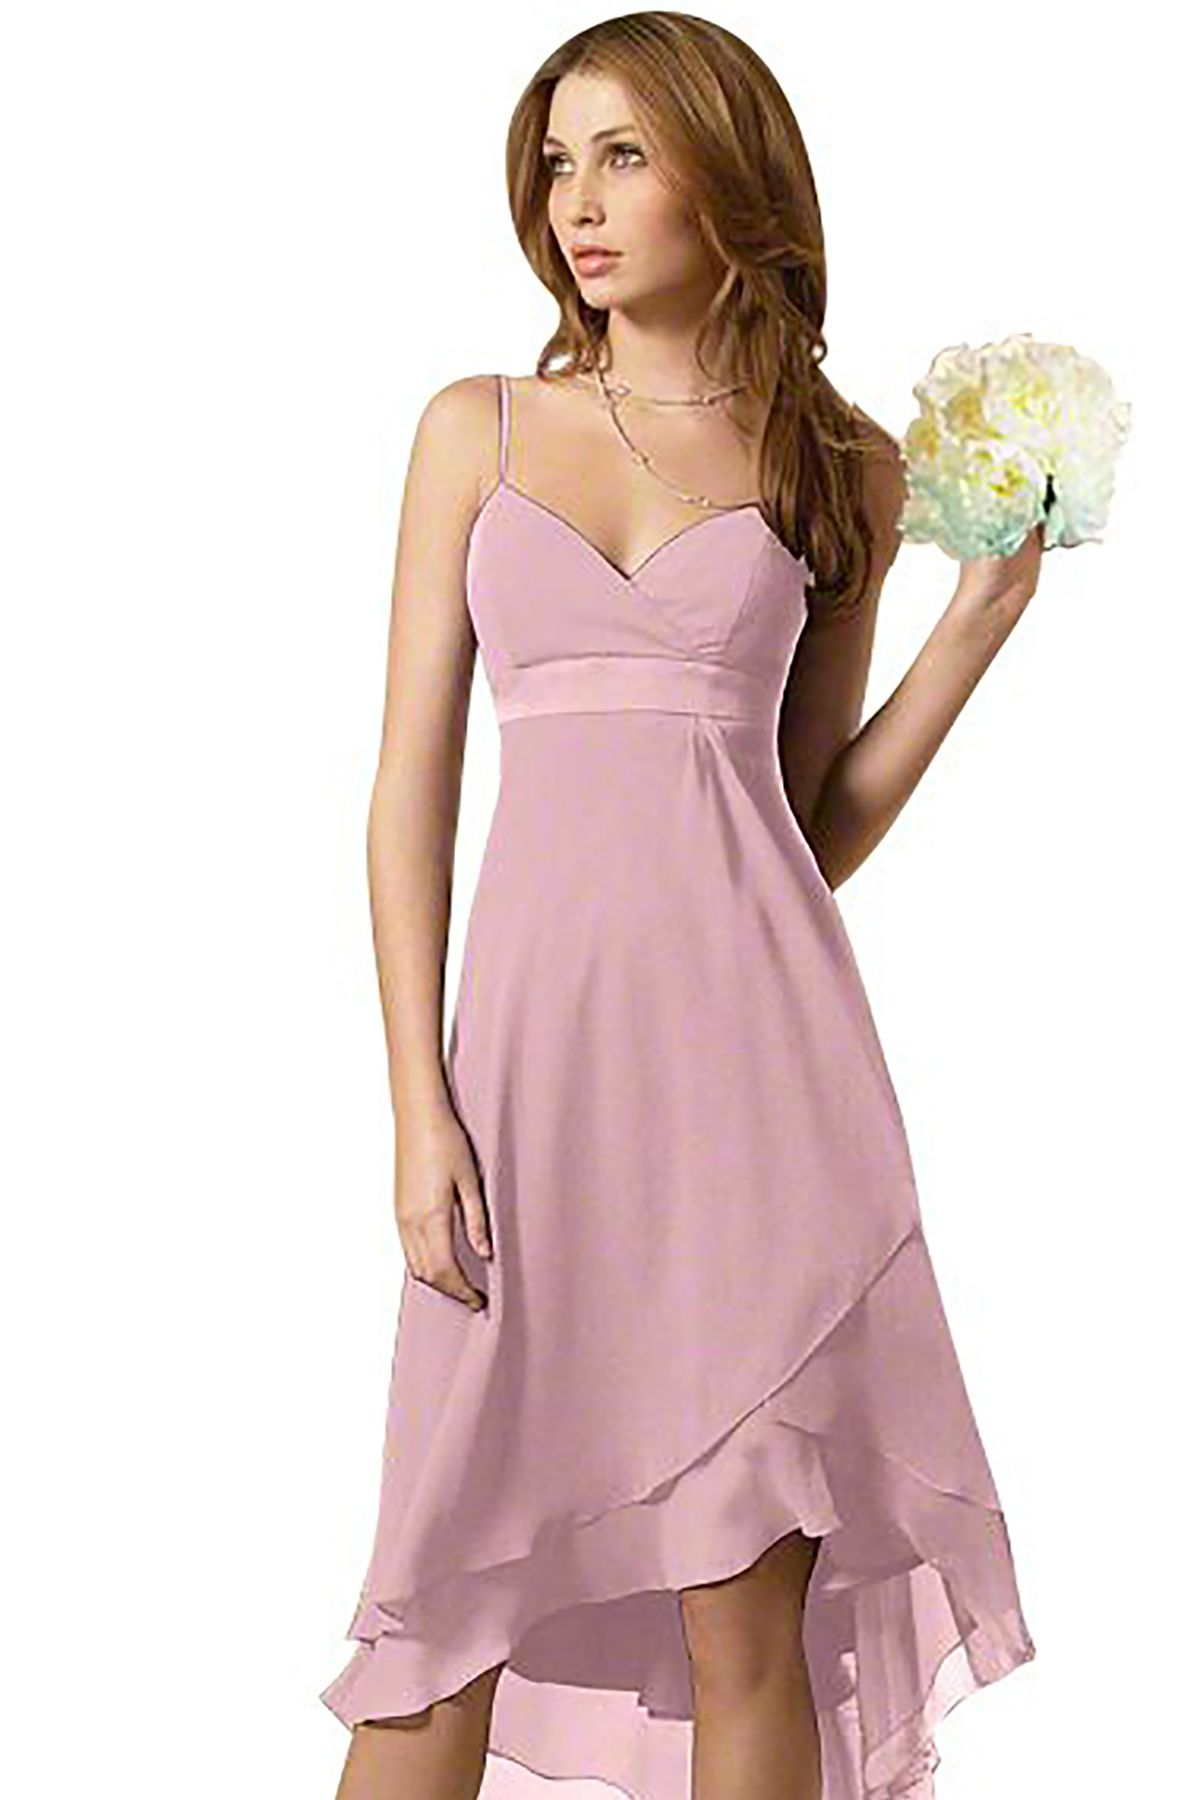 Alfred angelo 6471 bridesmaid dress in blush in chiffon one day alfred angelo 6471 bridesmaid dress in blush in chiffon ombrellifo Gallery